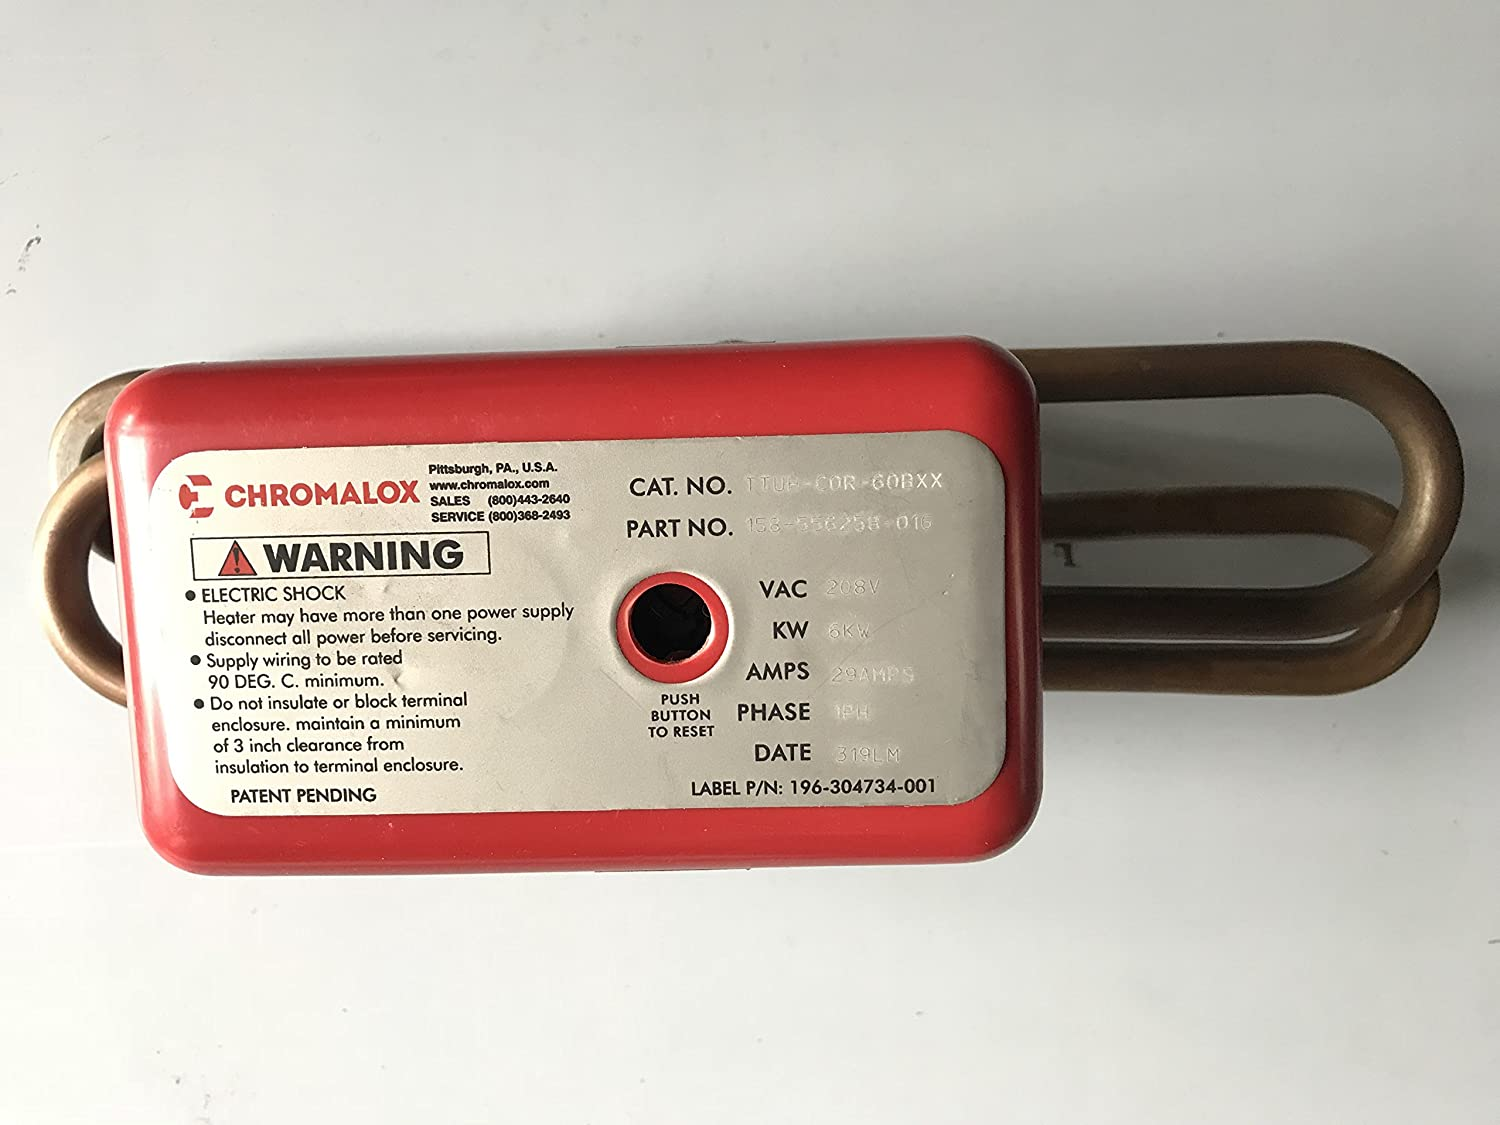 Chromalox TTUH-CO-50B 208V HEATING ELEMENT W/CUT OUT;208V 6000W